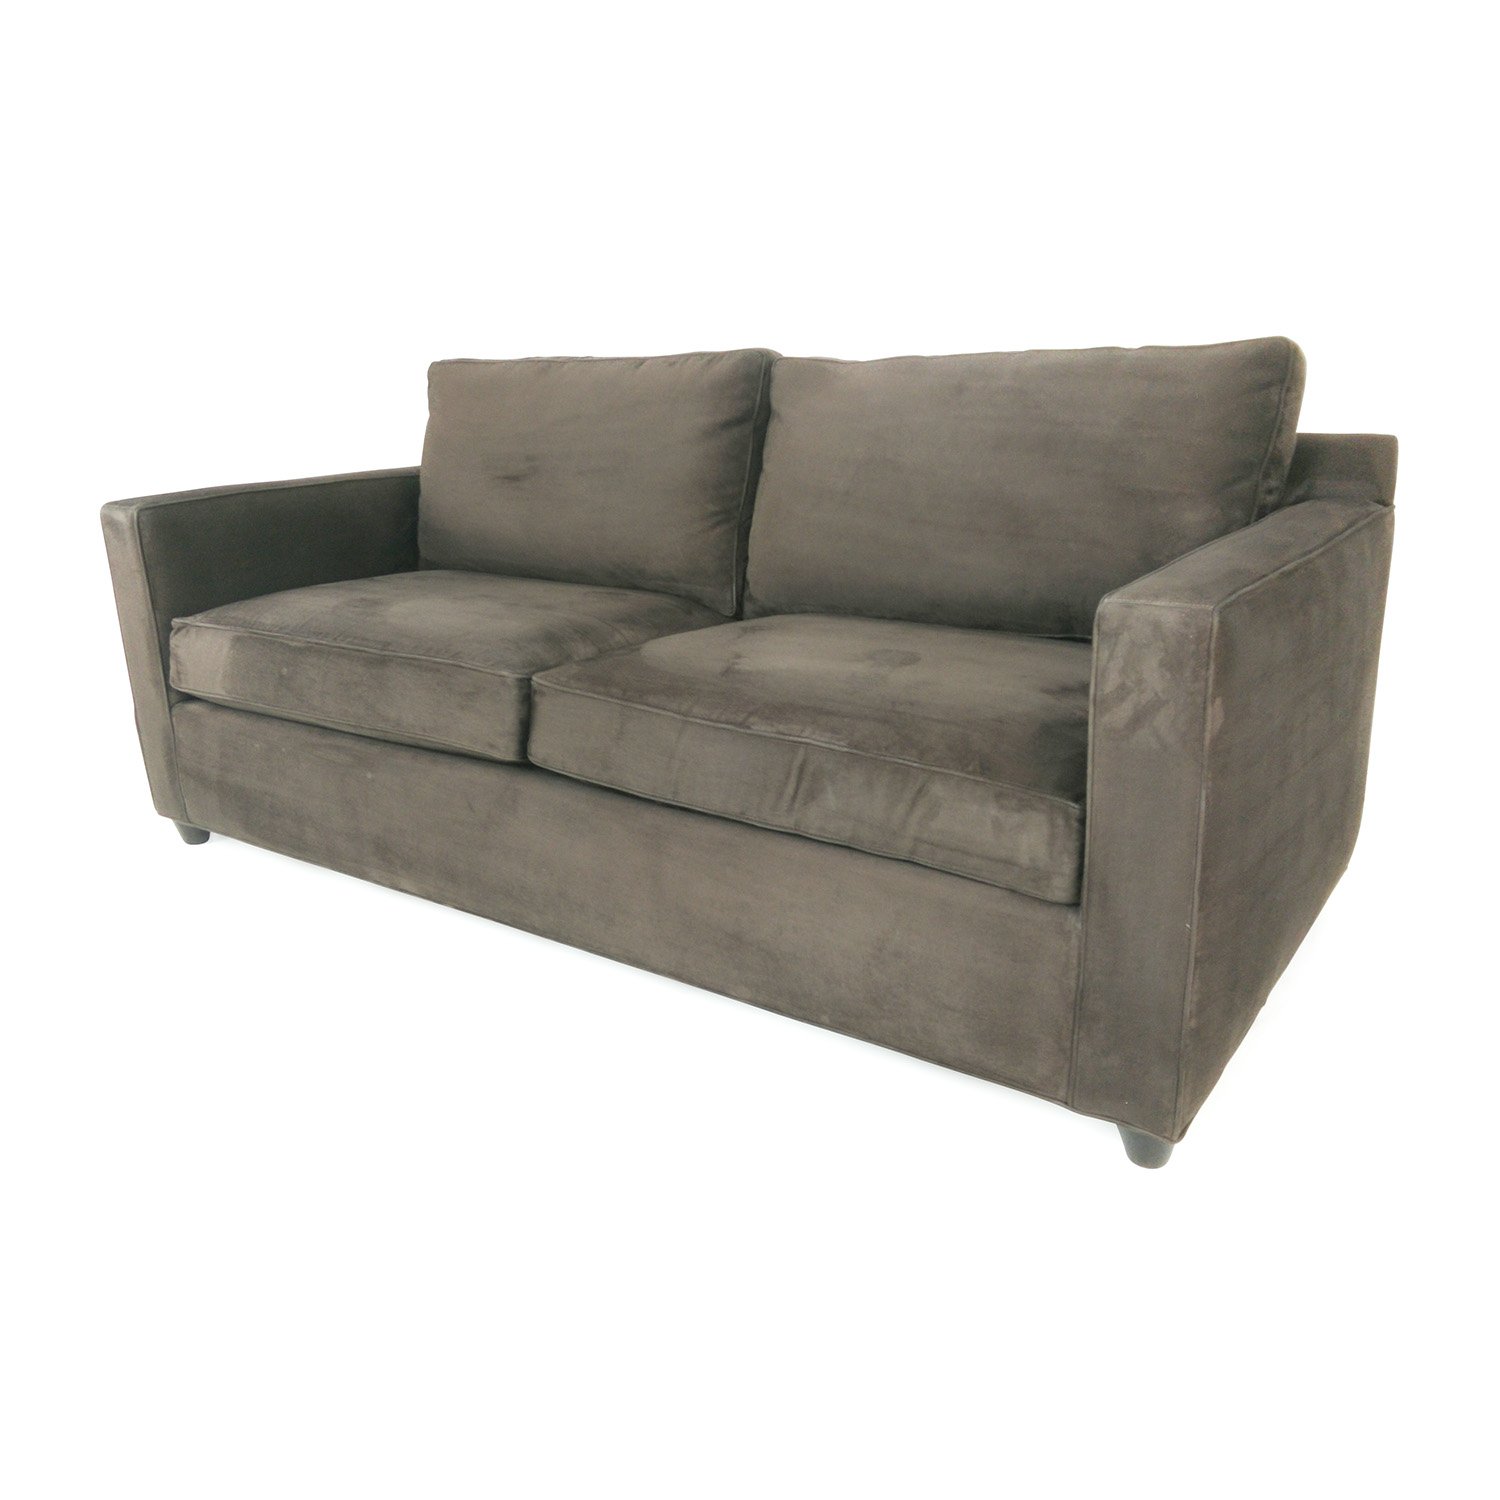 57% off - crate and barrel crate & barrel davis sofa / sofas